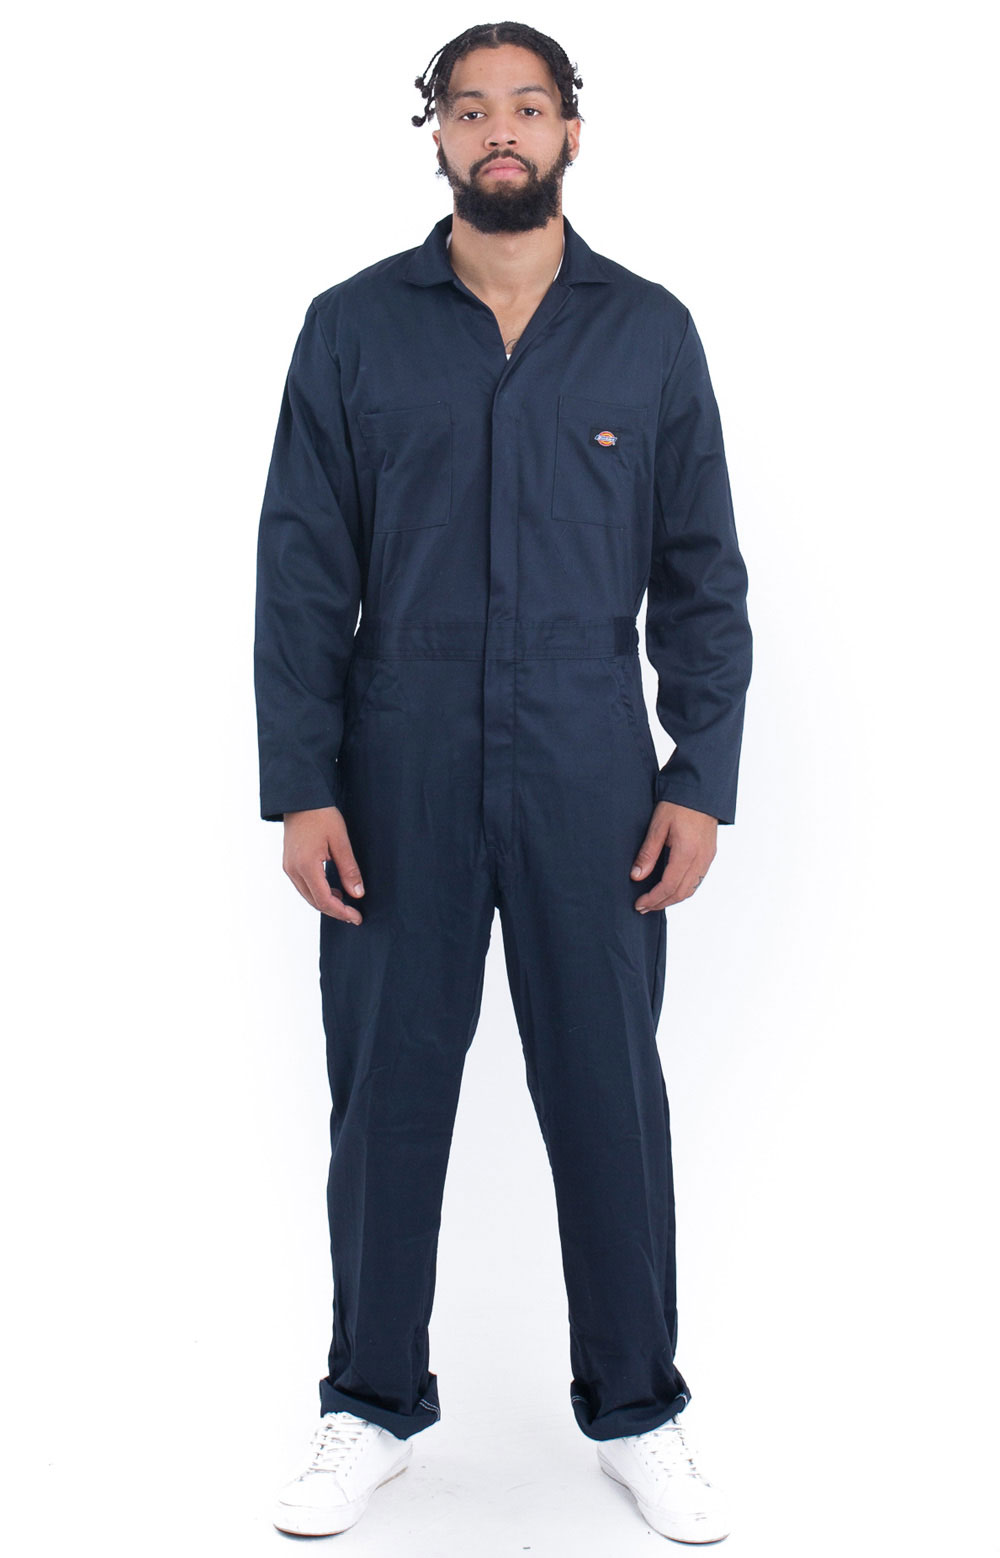 Basic Cotton Coveralls - Dark Navy